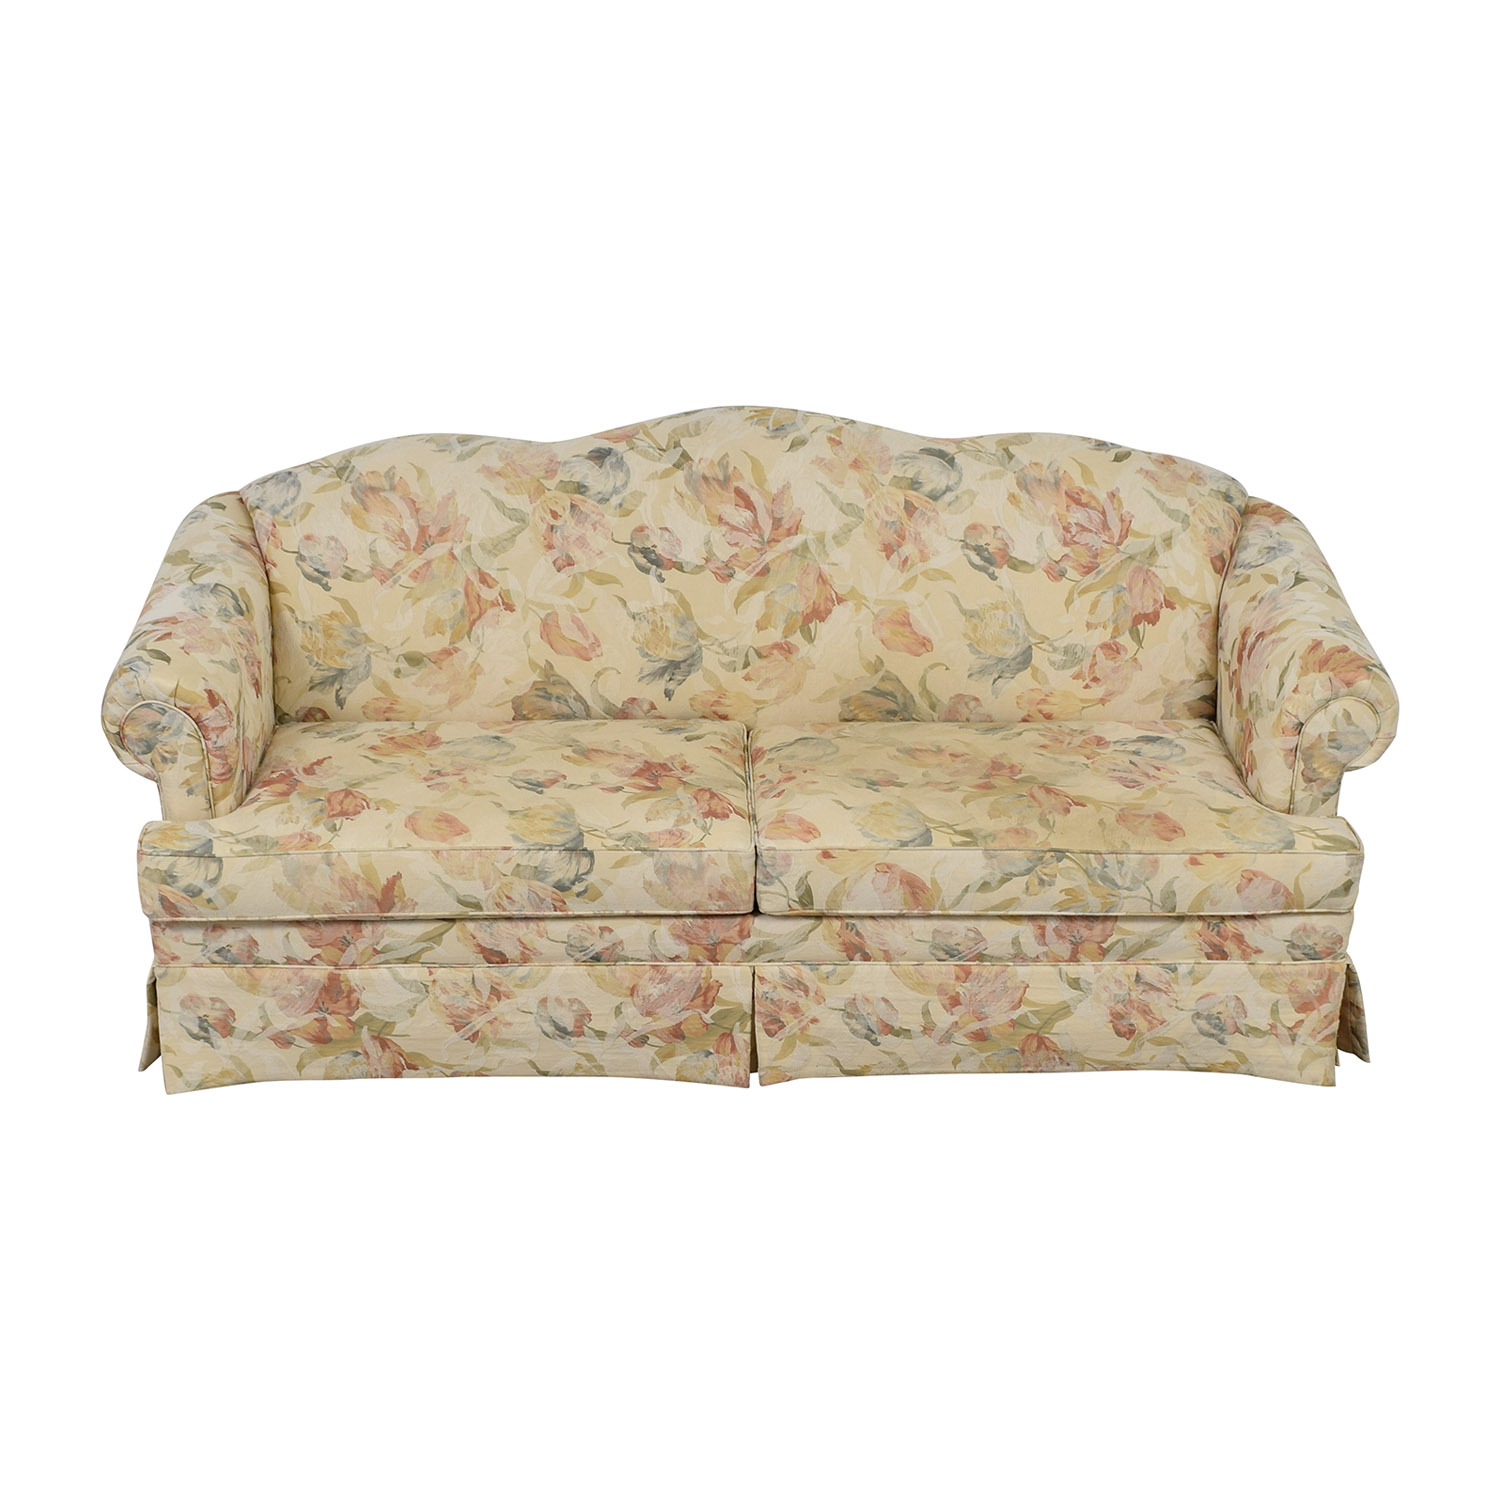 buy Ethan Allen Ethan Allen Multi-Colored Floral Upholstered Sofa online